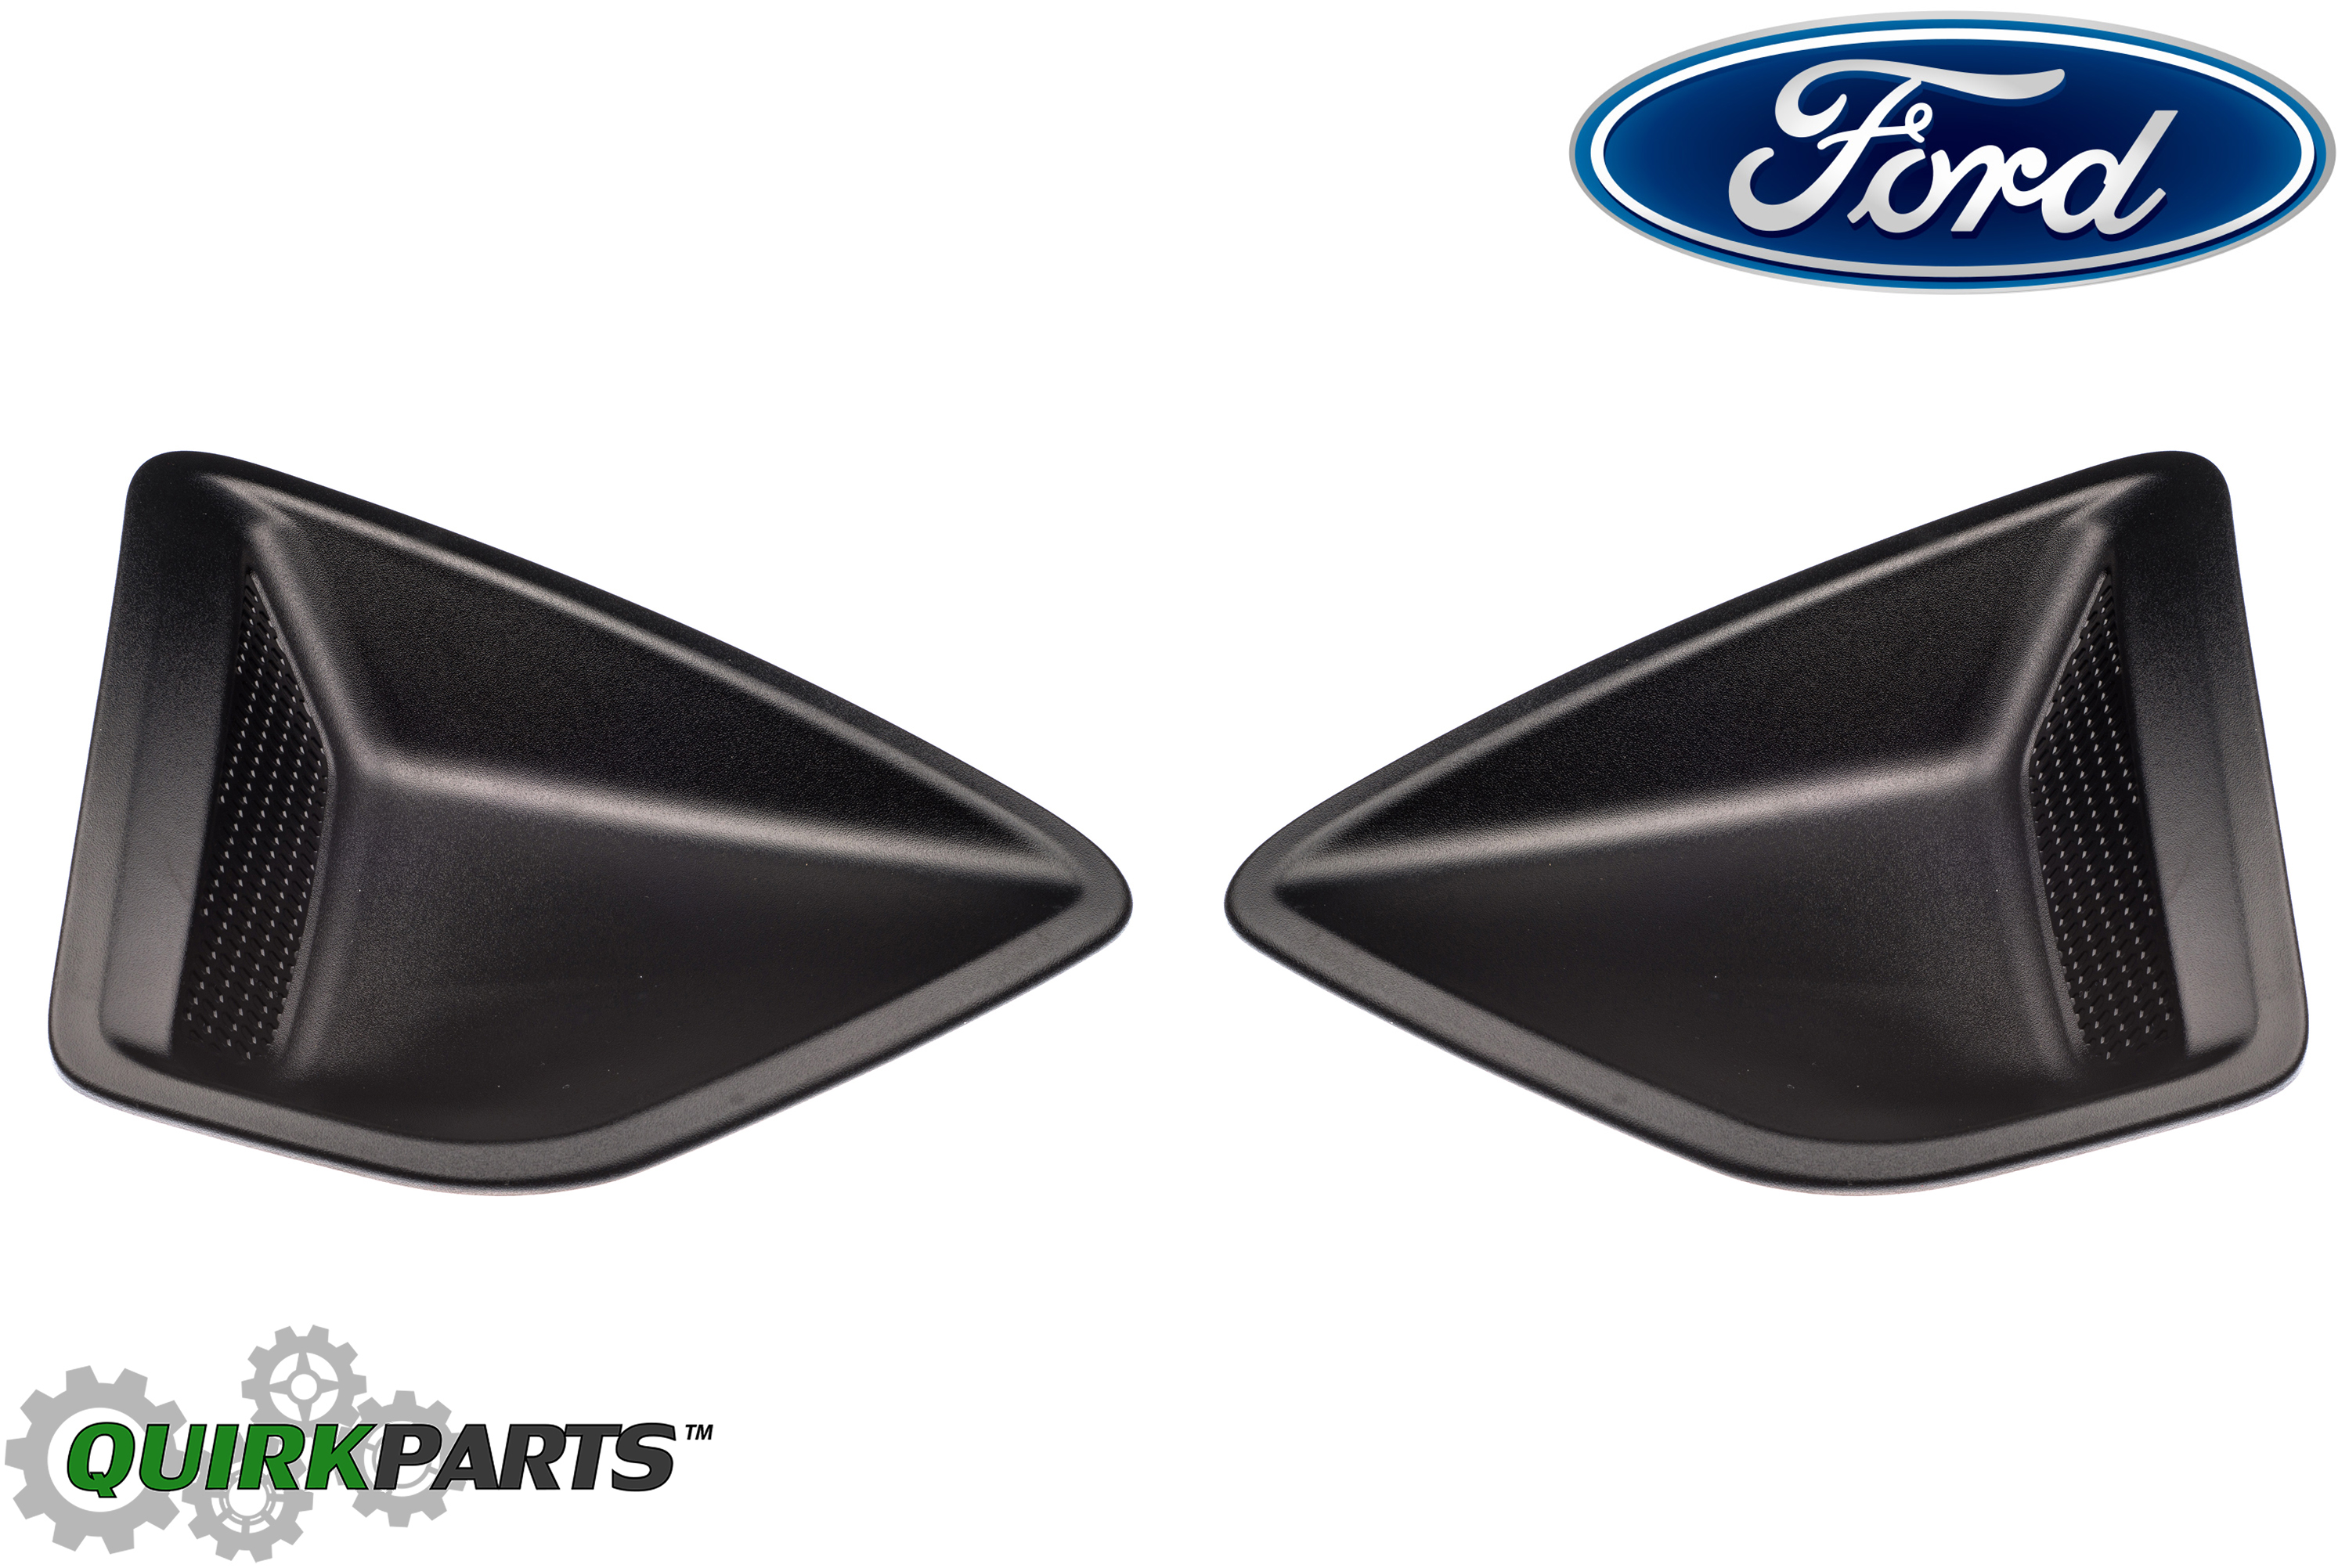 Pair front bumper fog light lamp cover Without Hole for Ford Fiesta 2013-2015